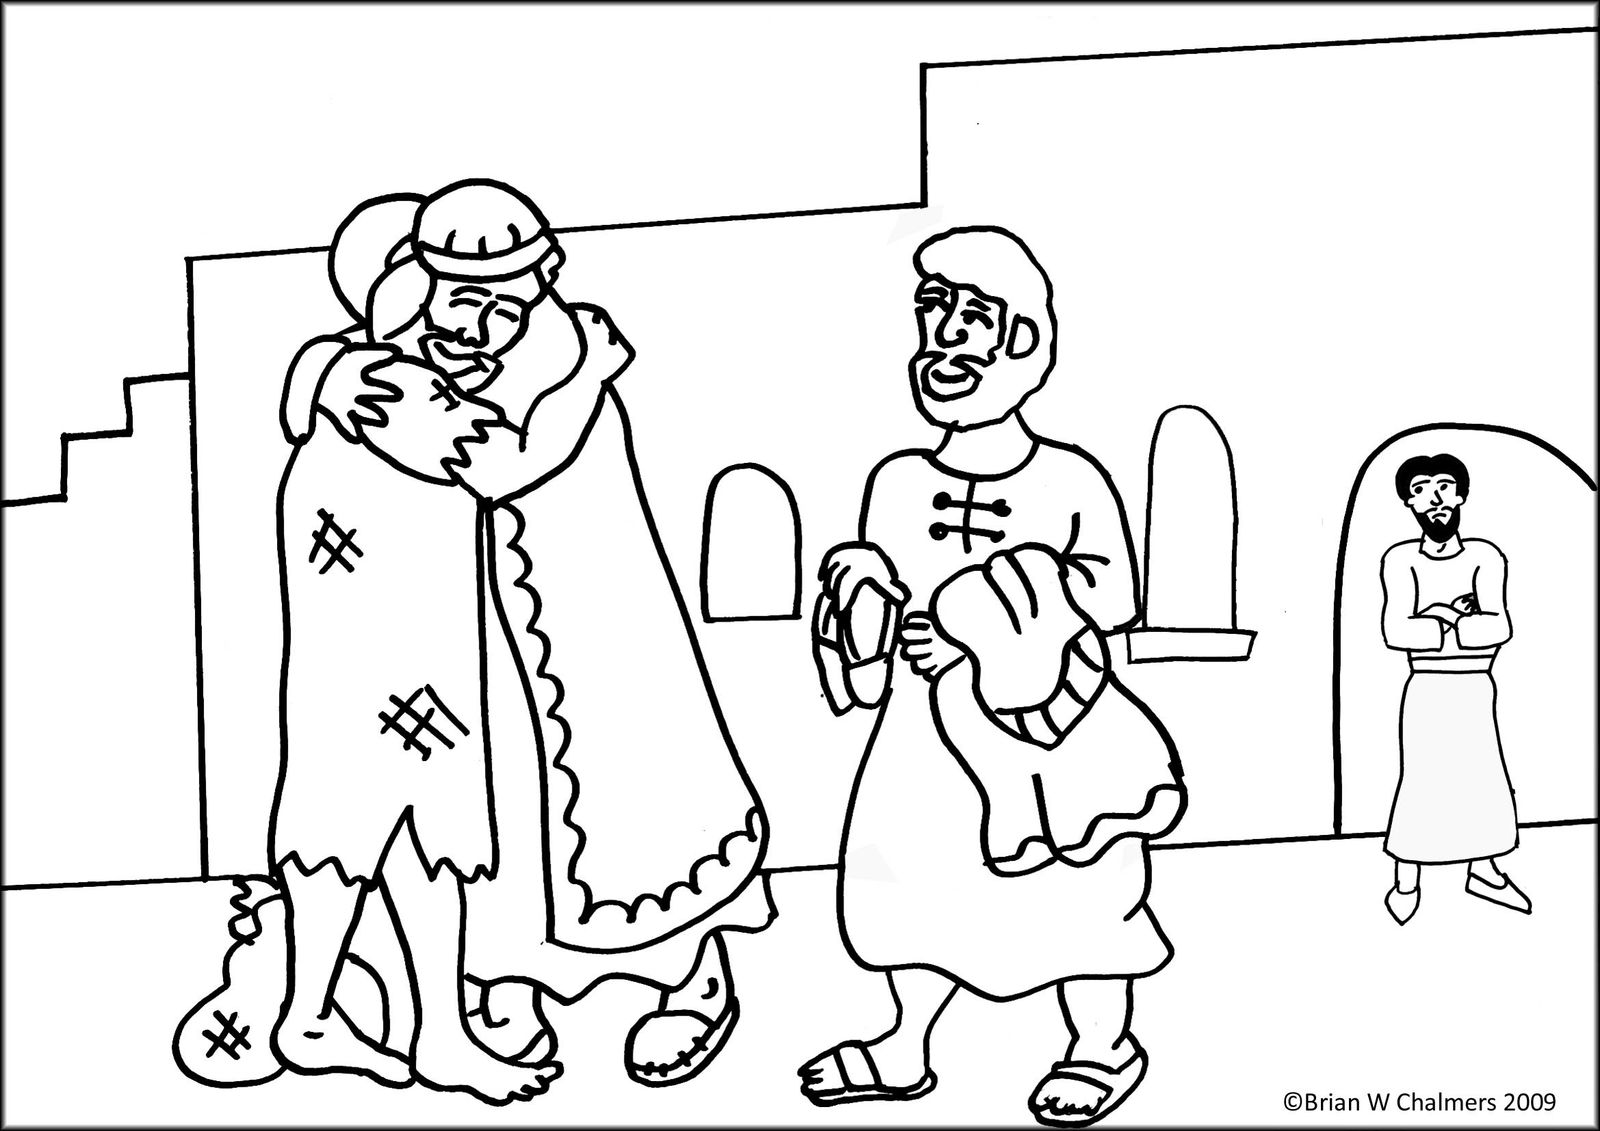 lost coin coloring pages - photo#12